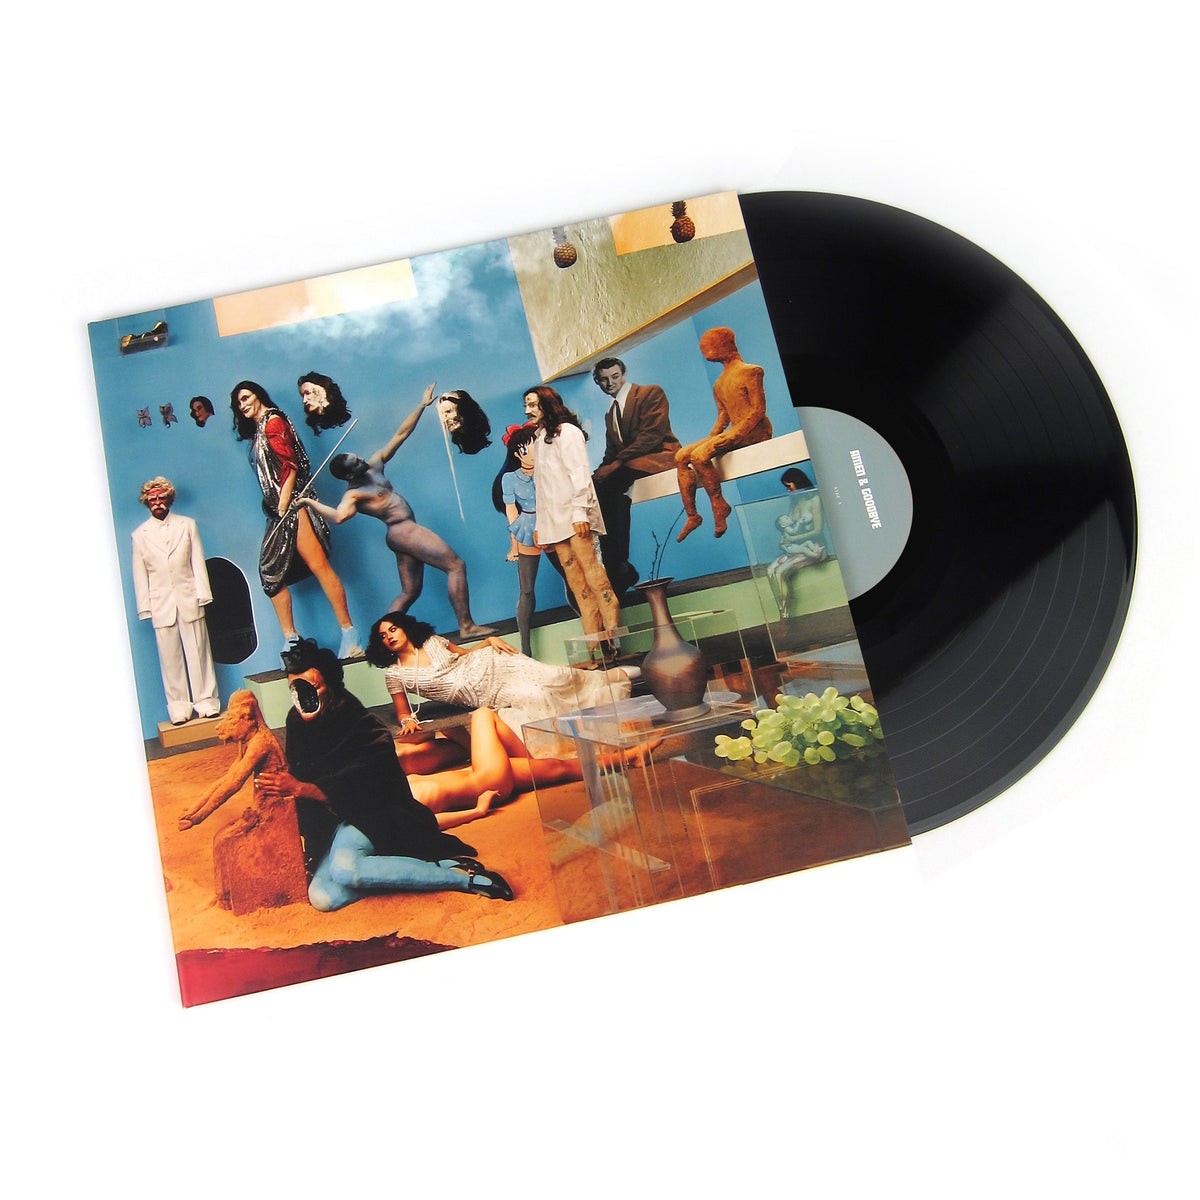 Yeasayer: Amen & Goodbye Vinyl LP